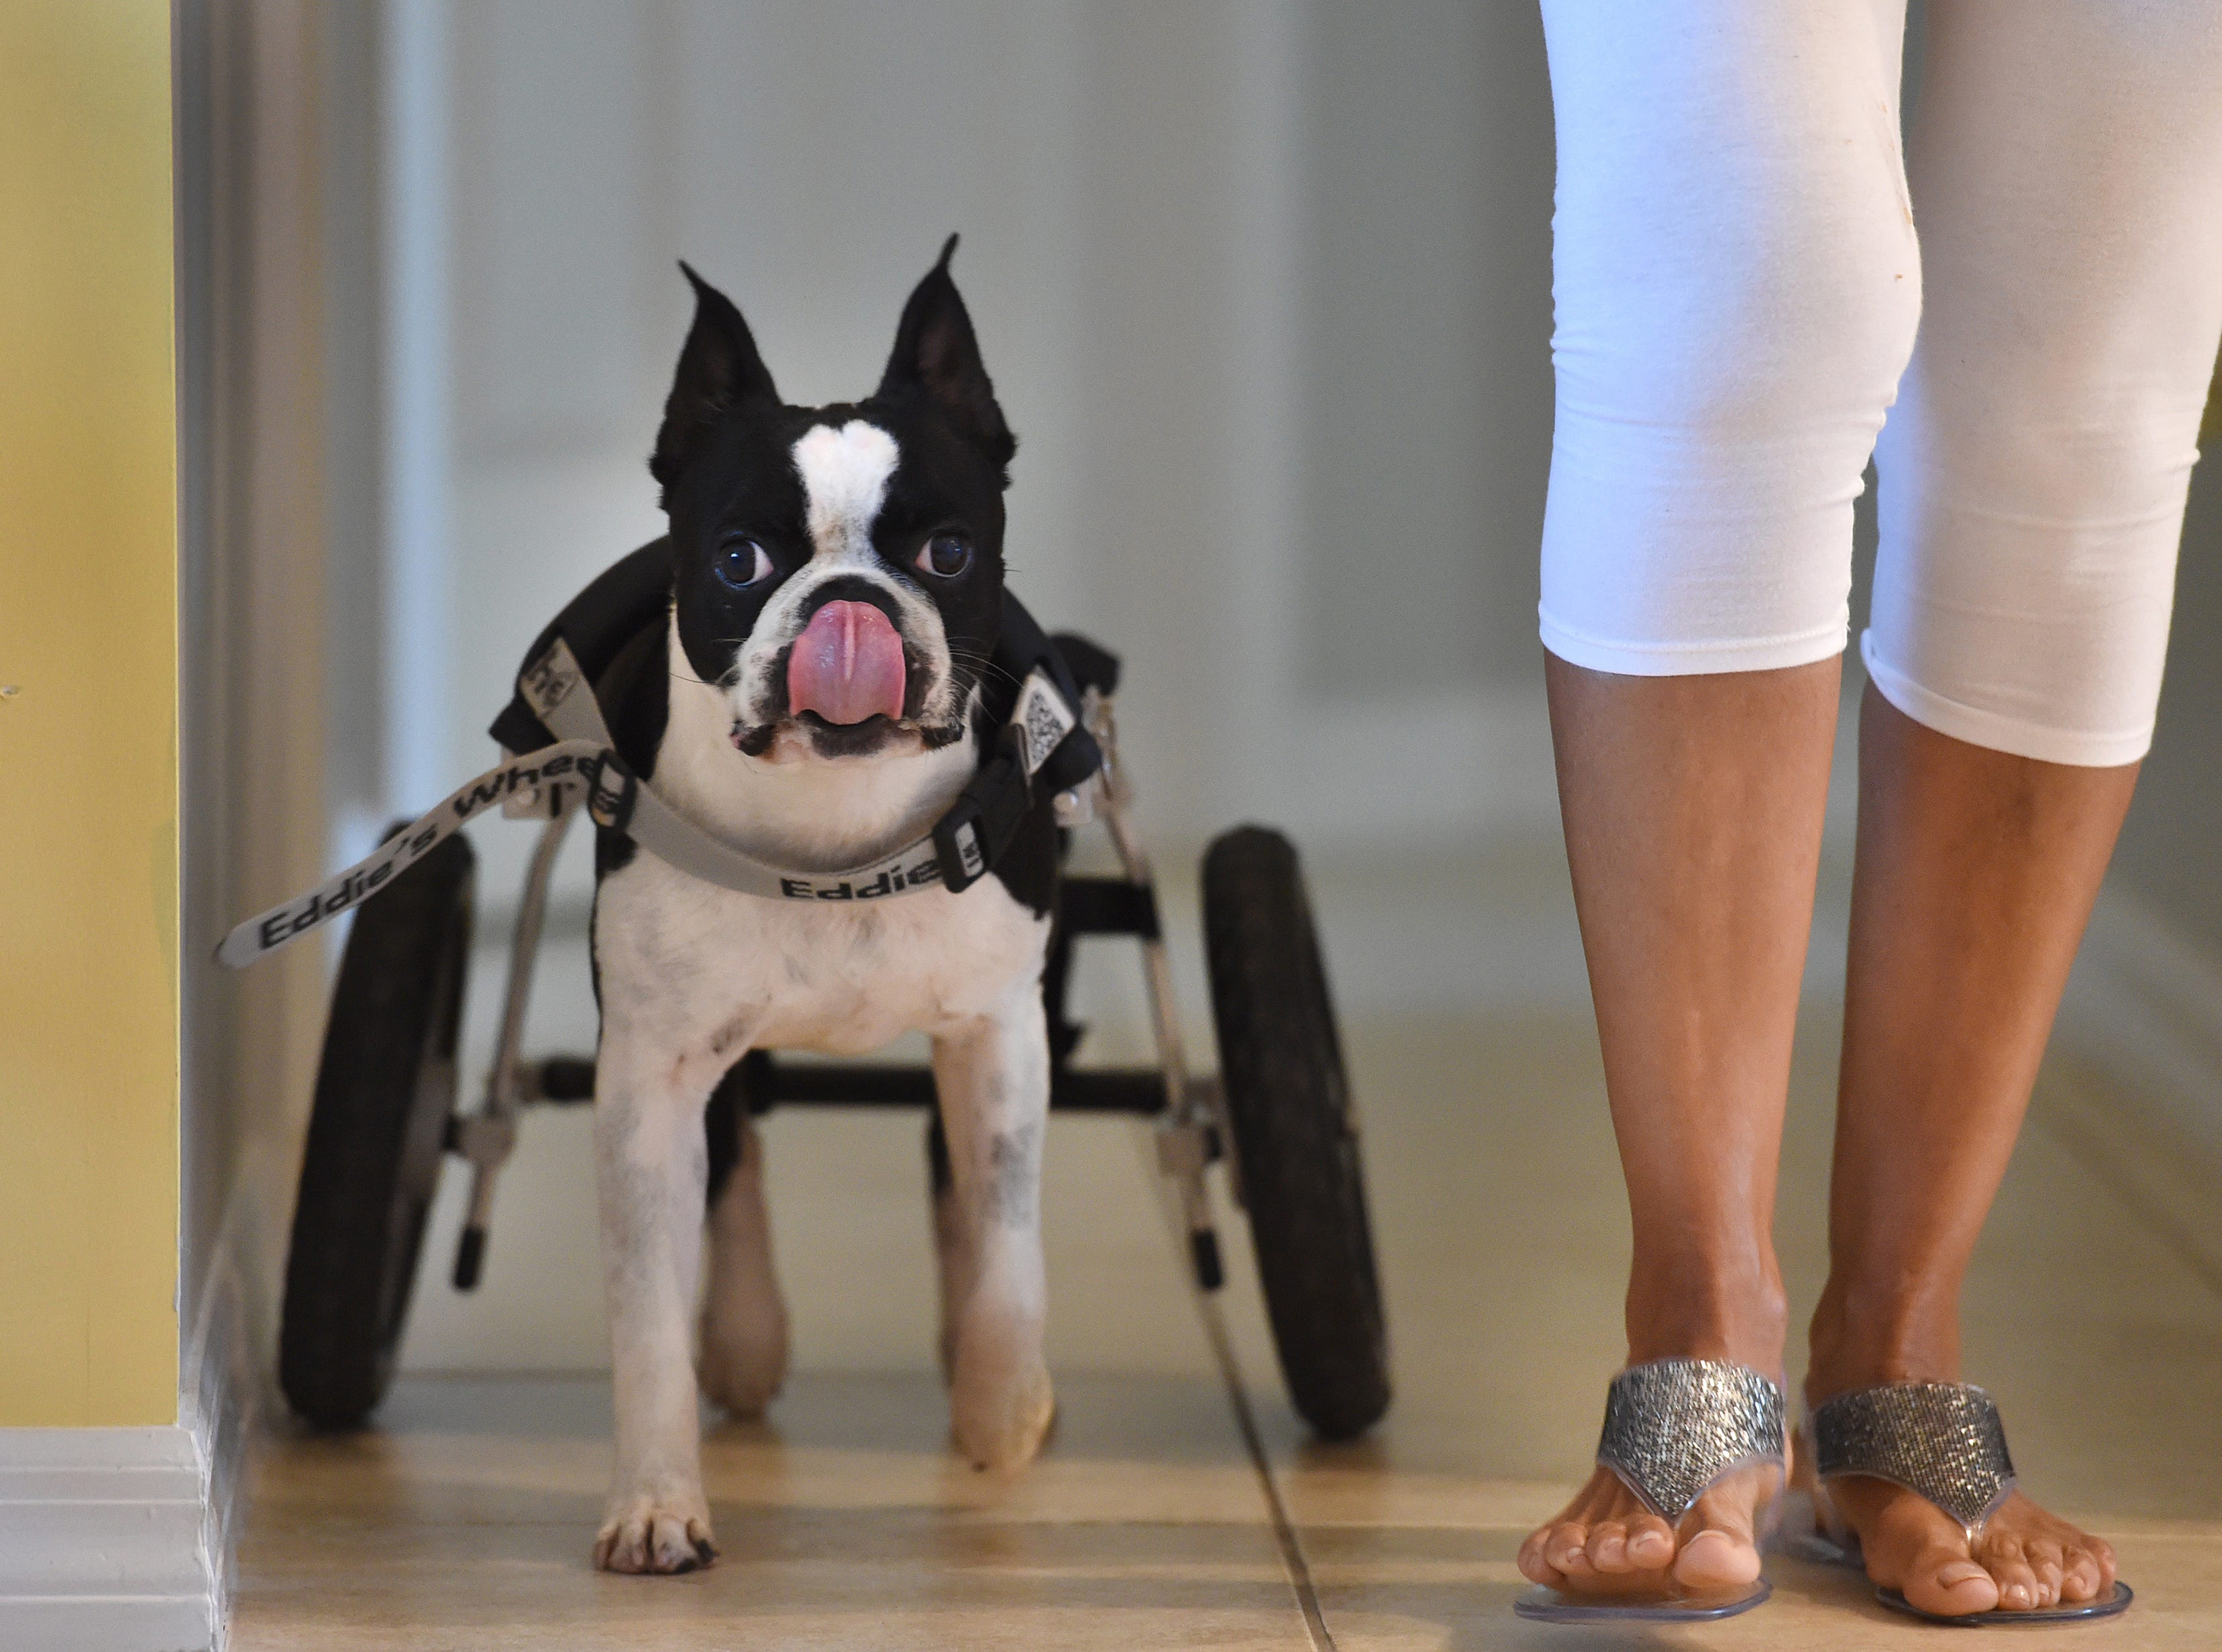 """Elvis, a four-year-old Boston Terrier, finishes of a treat while walking with his foster parent. Sylvia Oransky, a volunteer pet fosterer for H.A.L.O. No-Kill Rescue, as they move along the hallway of Oransky's home on Sunday, Sept. 16, 2018, in Sebastian. """"It's important, because if you look at these (TV) commercials and you know these stories about the horrible treatment a lot of these animals go through, you feel like you're being a part of doing the right thing, and you're helping not only shelters but your community, plus another life,"""" Oransky said. """"Although it's a dog, a cat, whatever type, a bird, it's still important, it's a life, and that's what the world should be about, helping each other."""""""